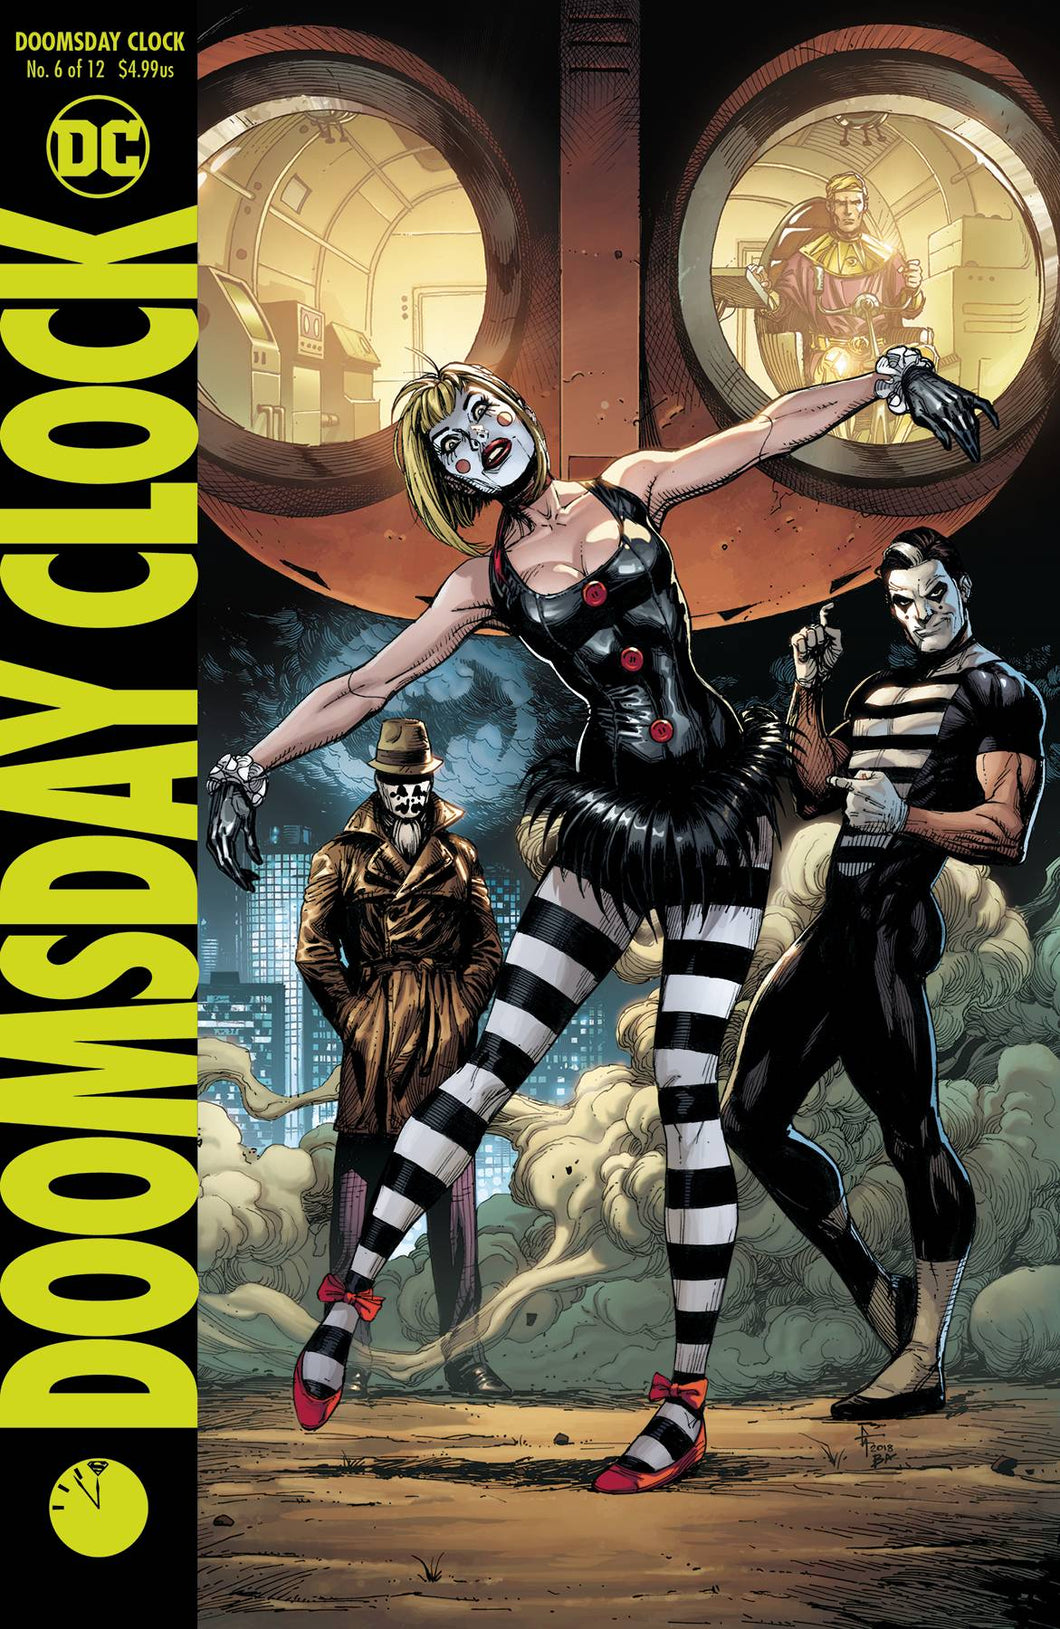 DOOMSDAY CLOCK #6 (OF 12) VAR ED RELEASE DATE 07/25